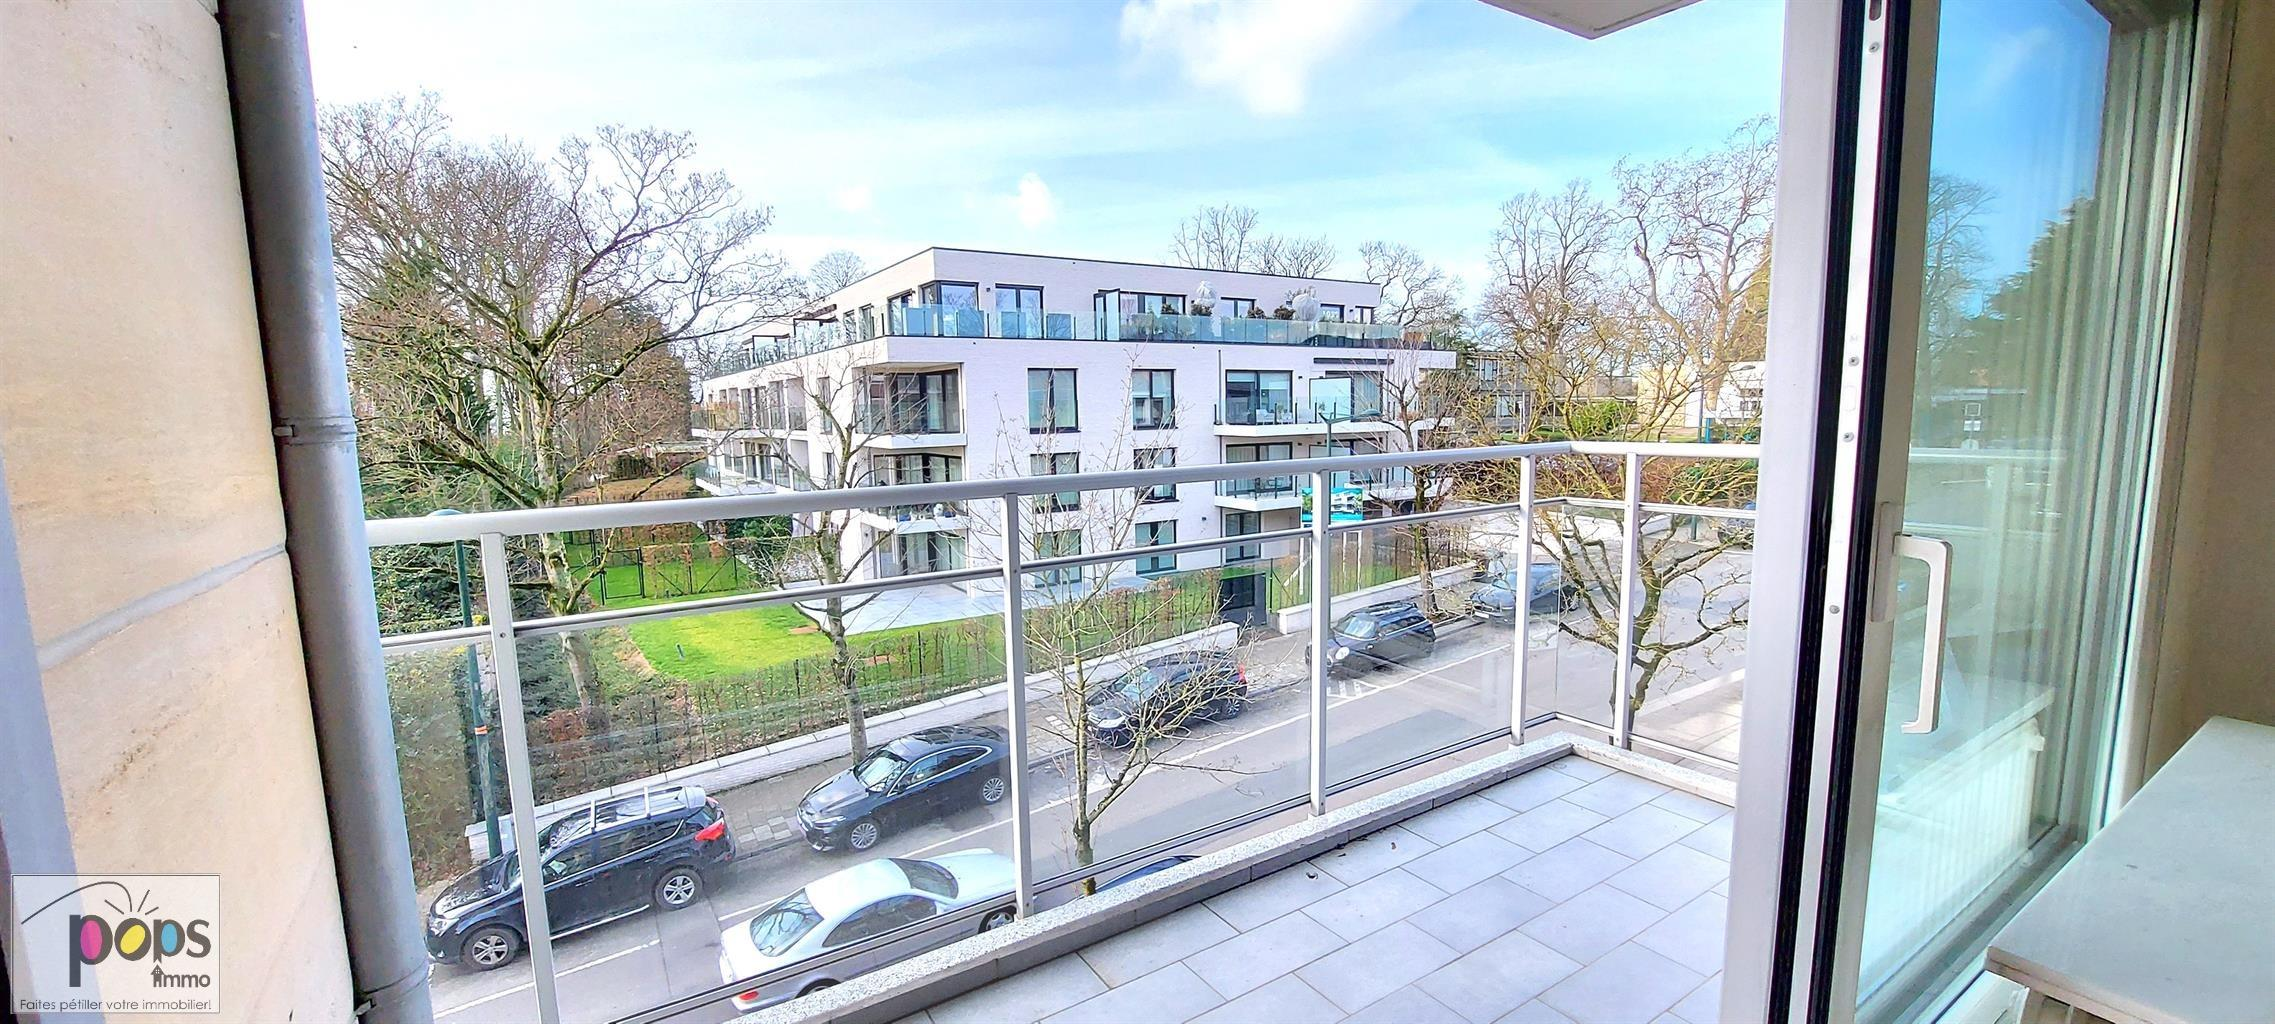 Appartement - Uccle - #4311863-6